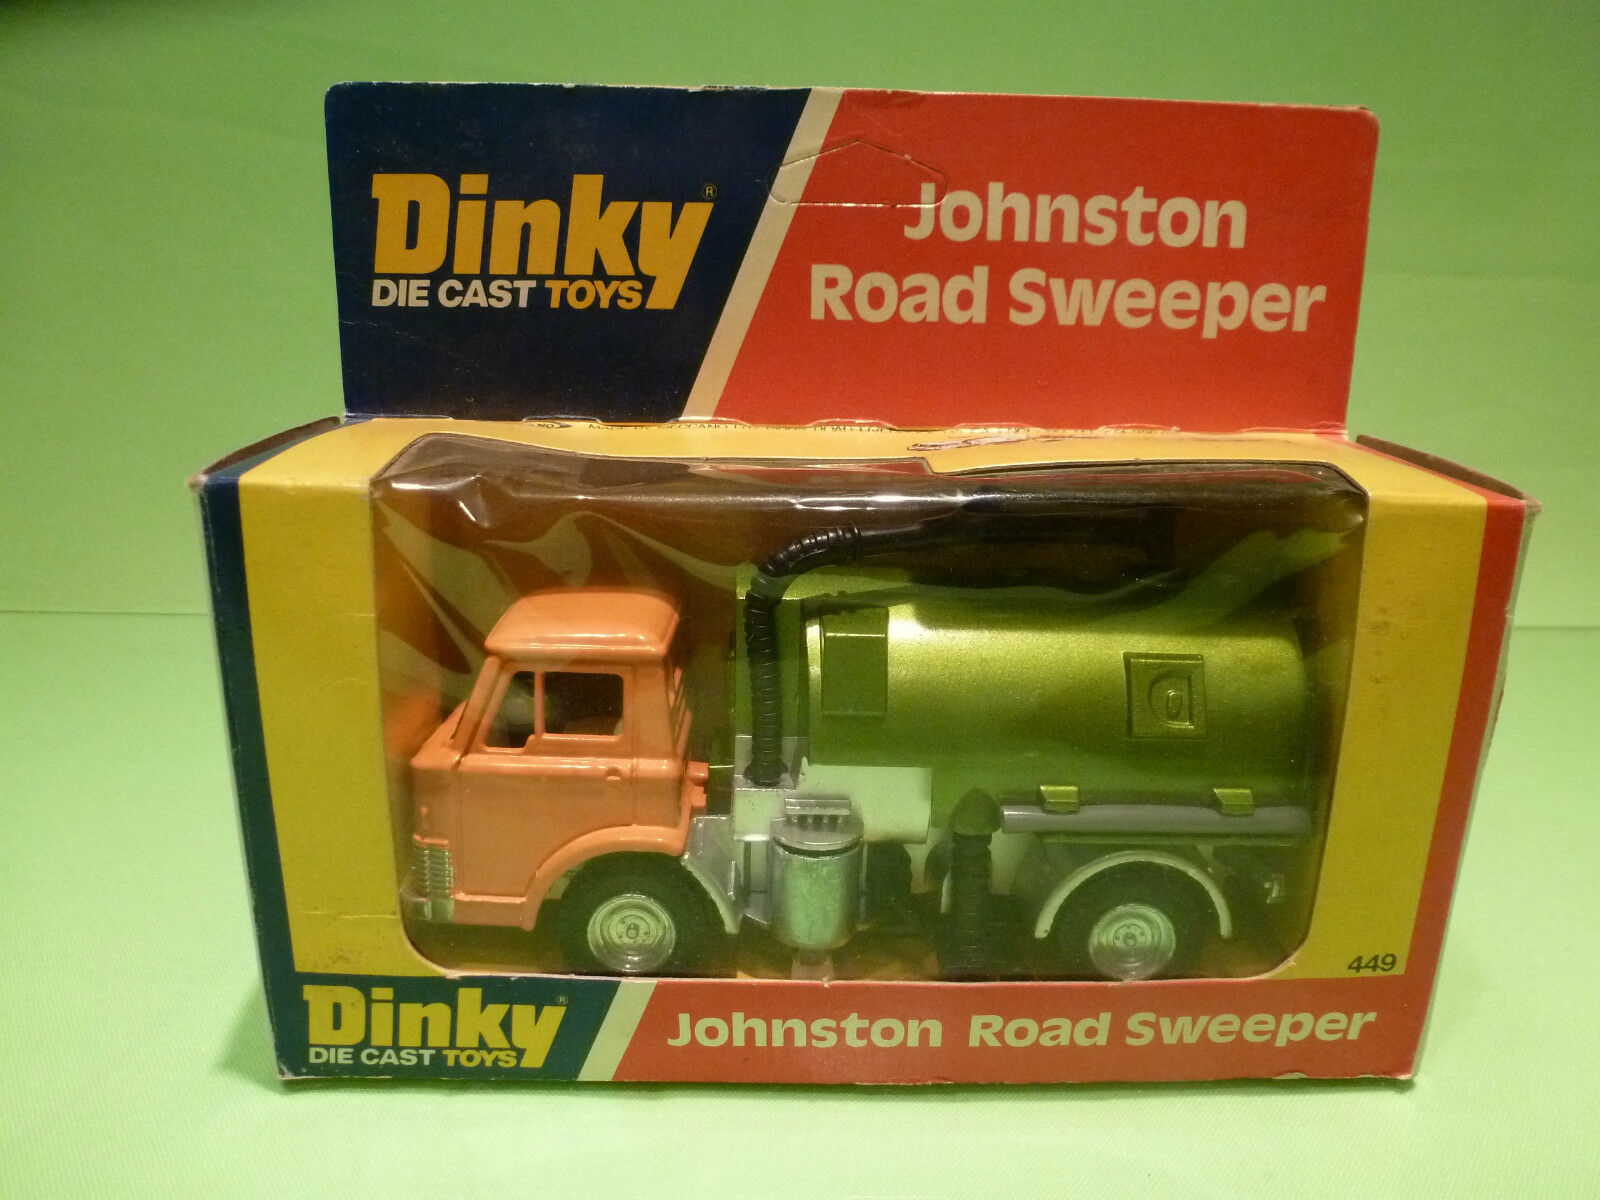 DINKY TOYS 449 JOHNSTON ROAD SWEEPER - RARE SELTEN - GOOD CONDITION IN BOX